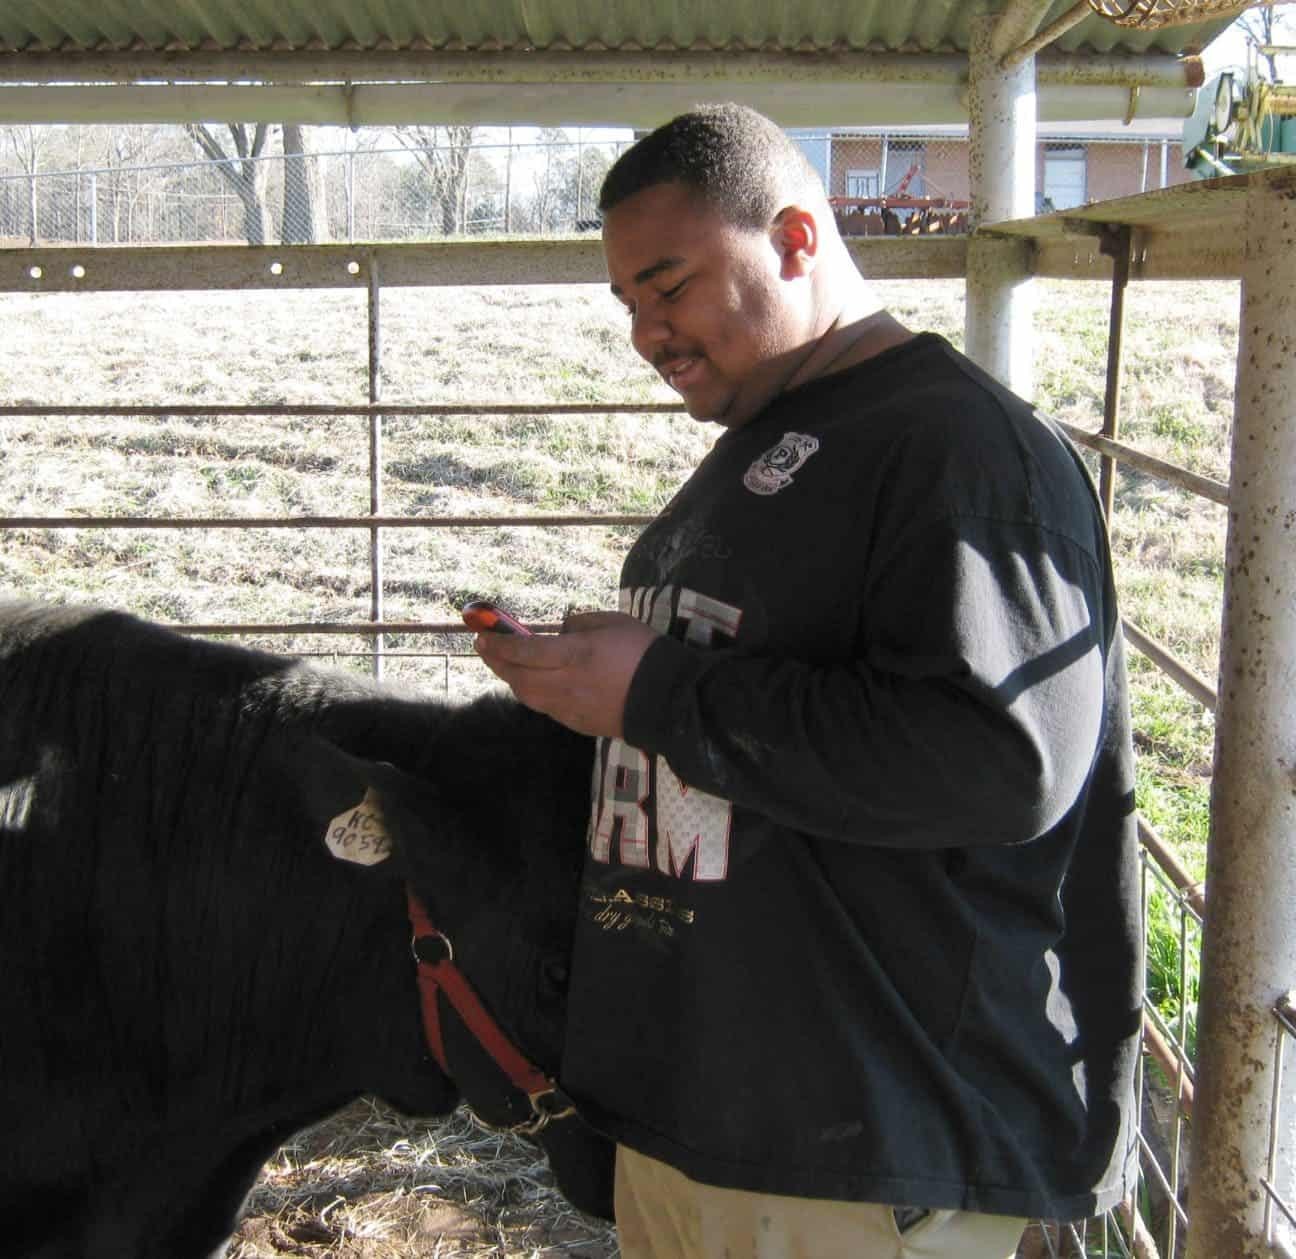 Just because you work the demonstration farm doesn't mean you're out of touch. Jerome checks his messages.